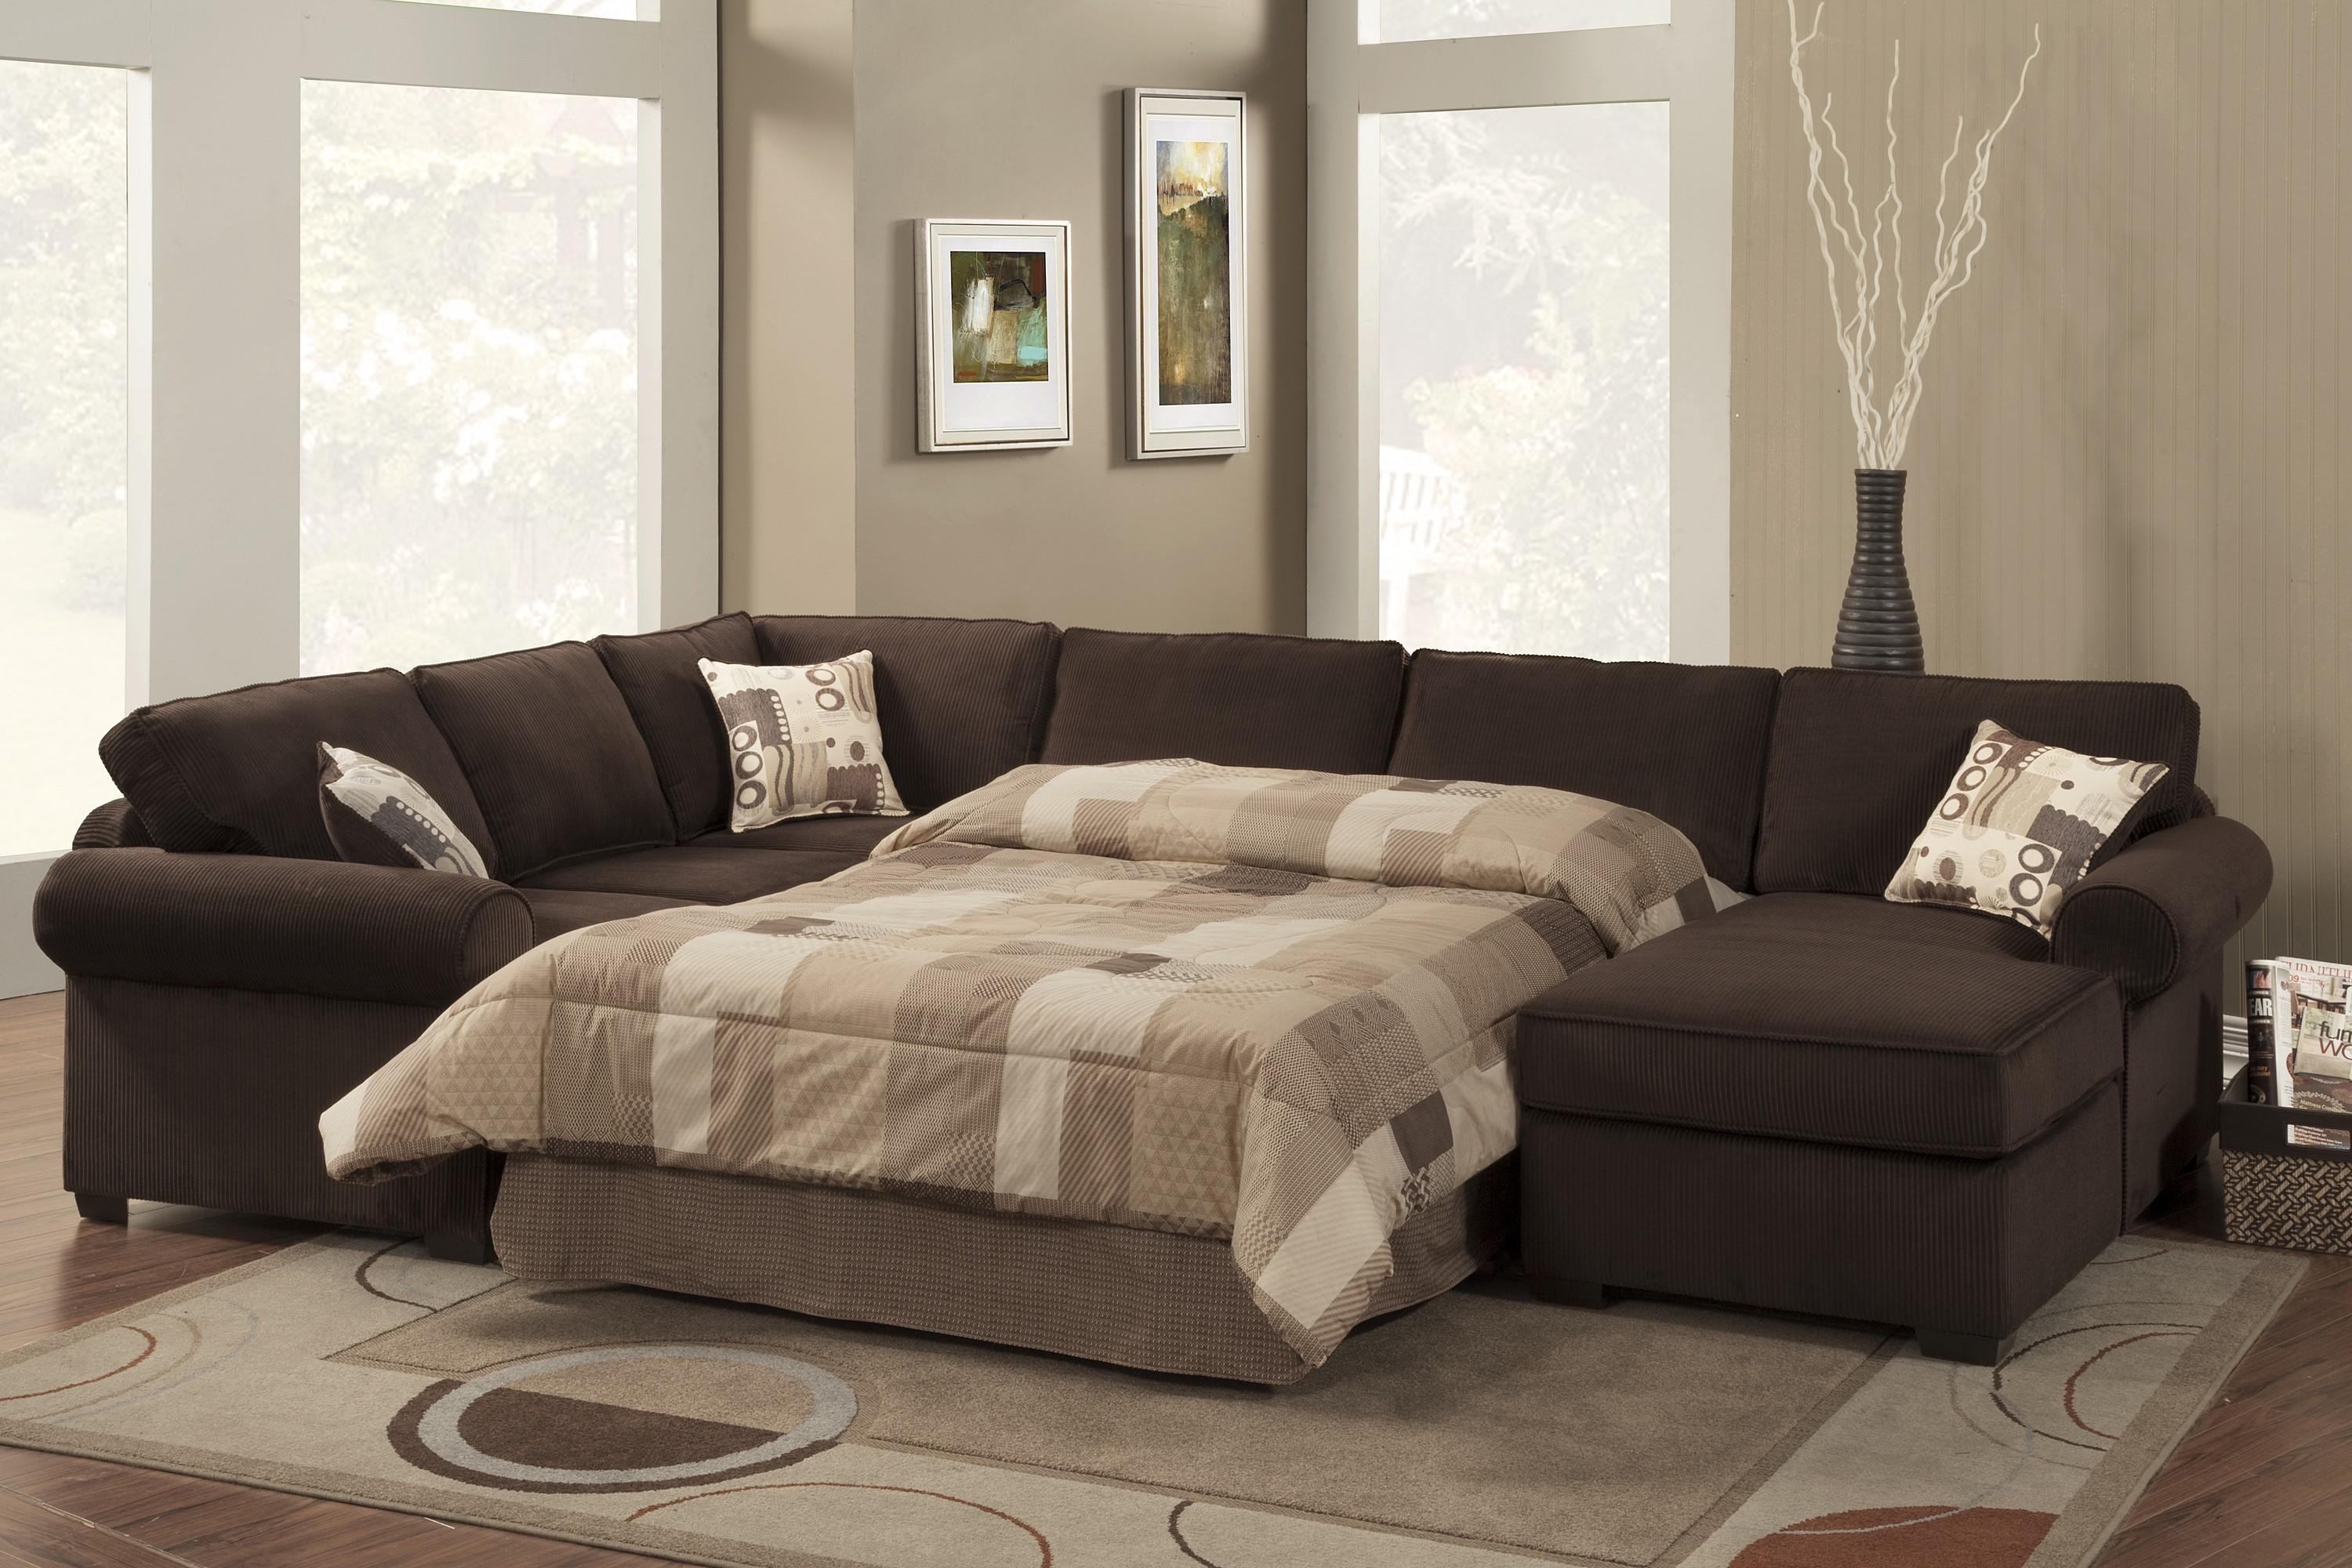 Sofa: Comfort And Style Is Evident In This Dynamic With Tufted Within Microfiber Sectional Sofas (Image 19 of 20)